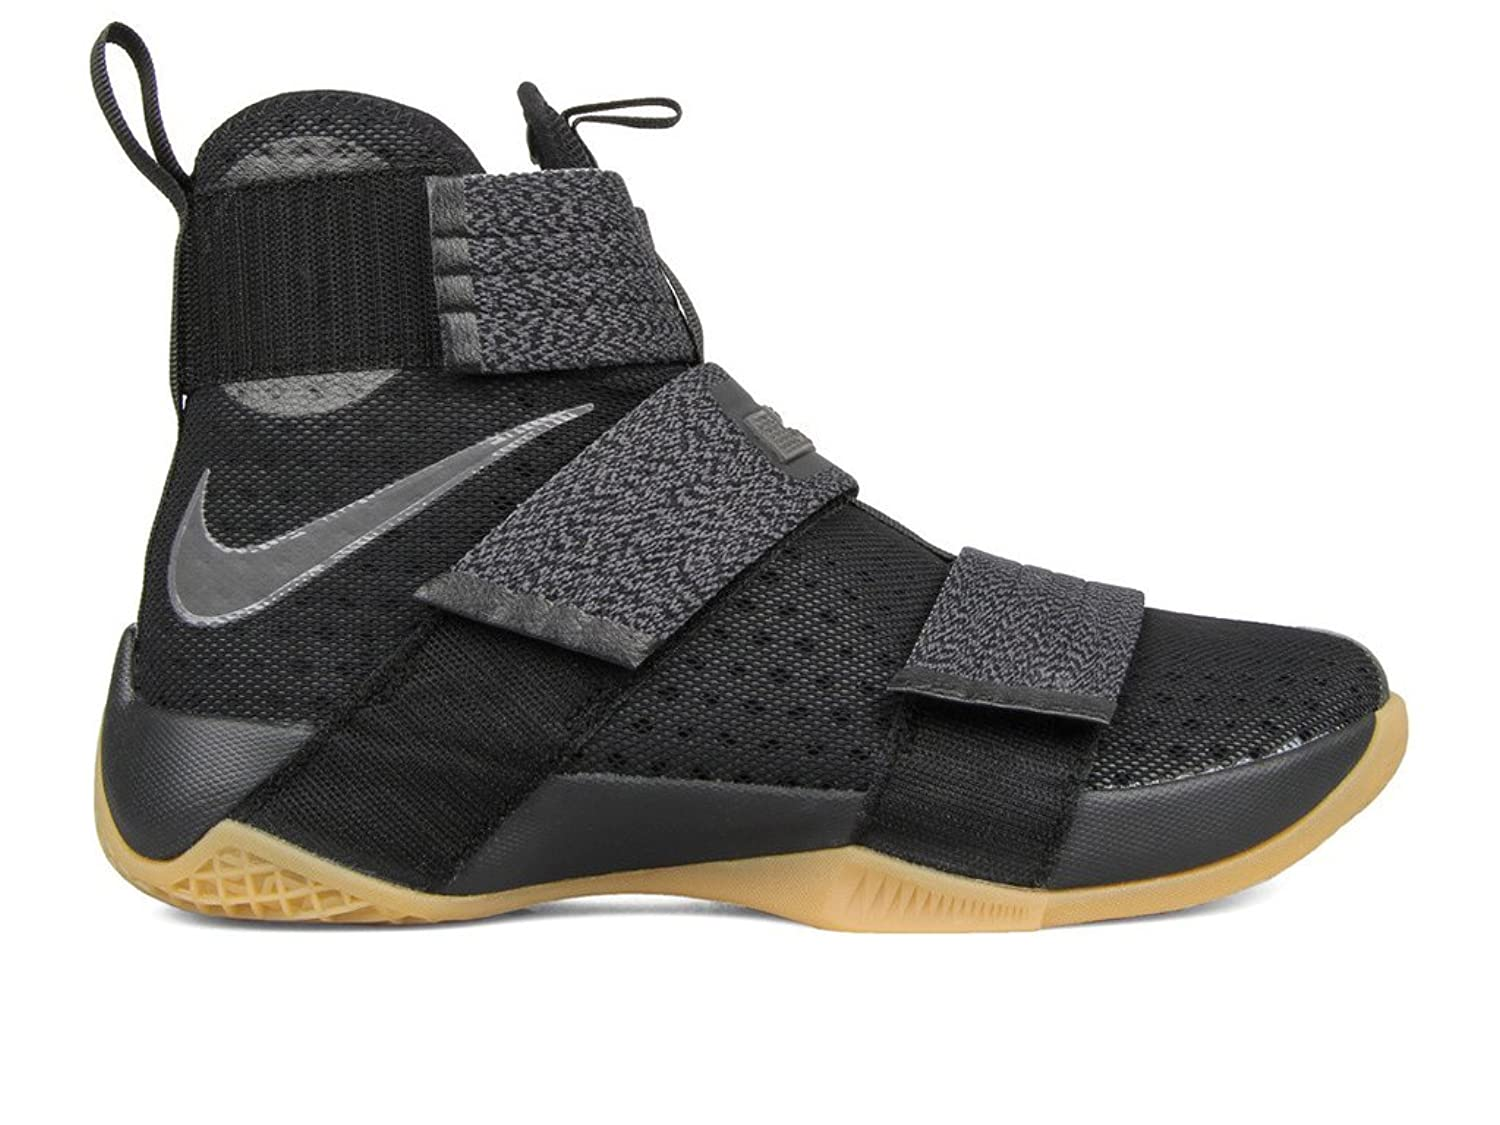 ... Amazon.com Nike LeBron Soldier 10 SFG Shoes